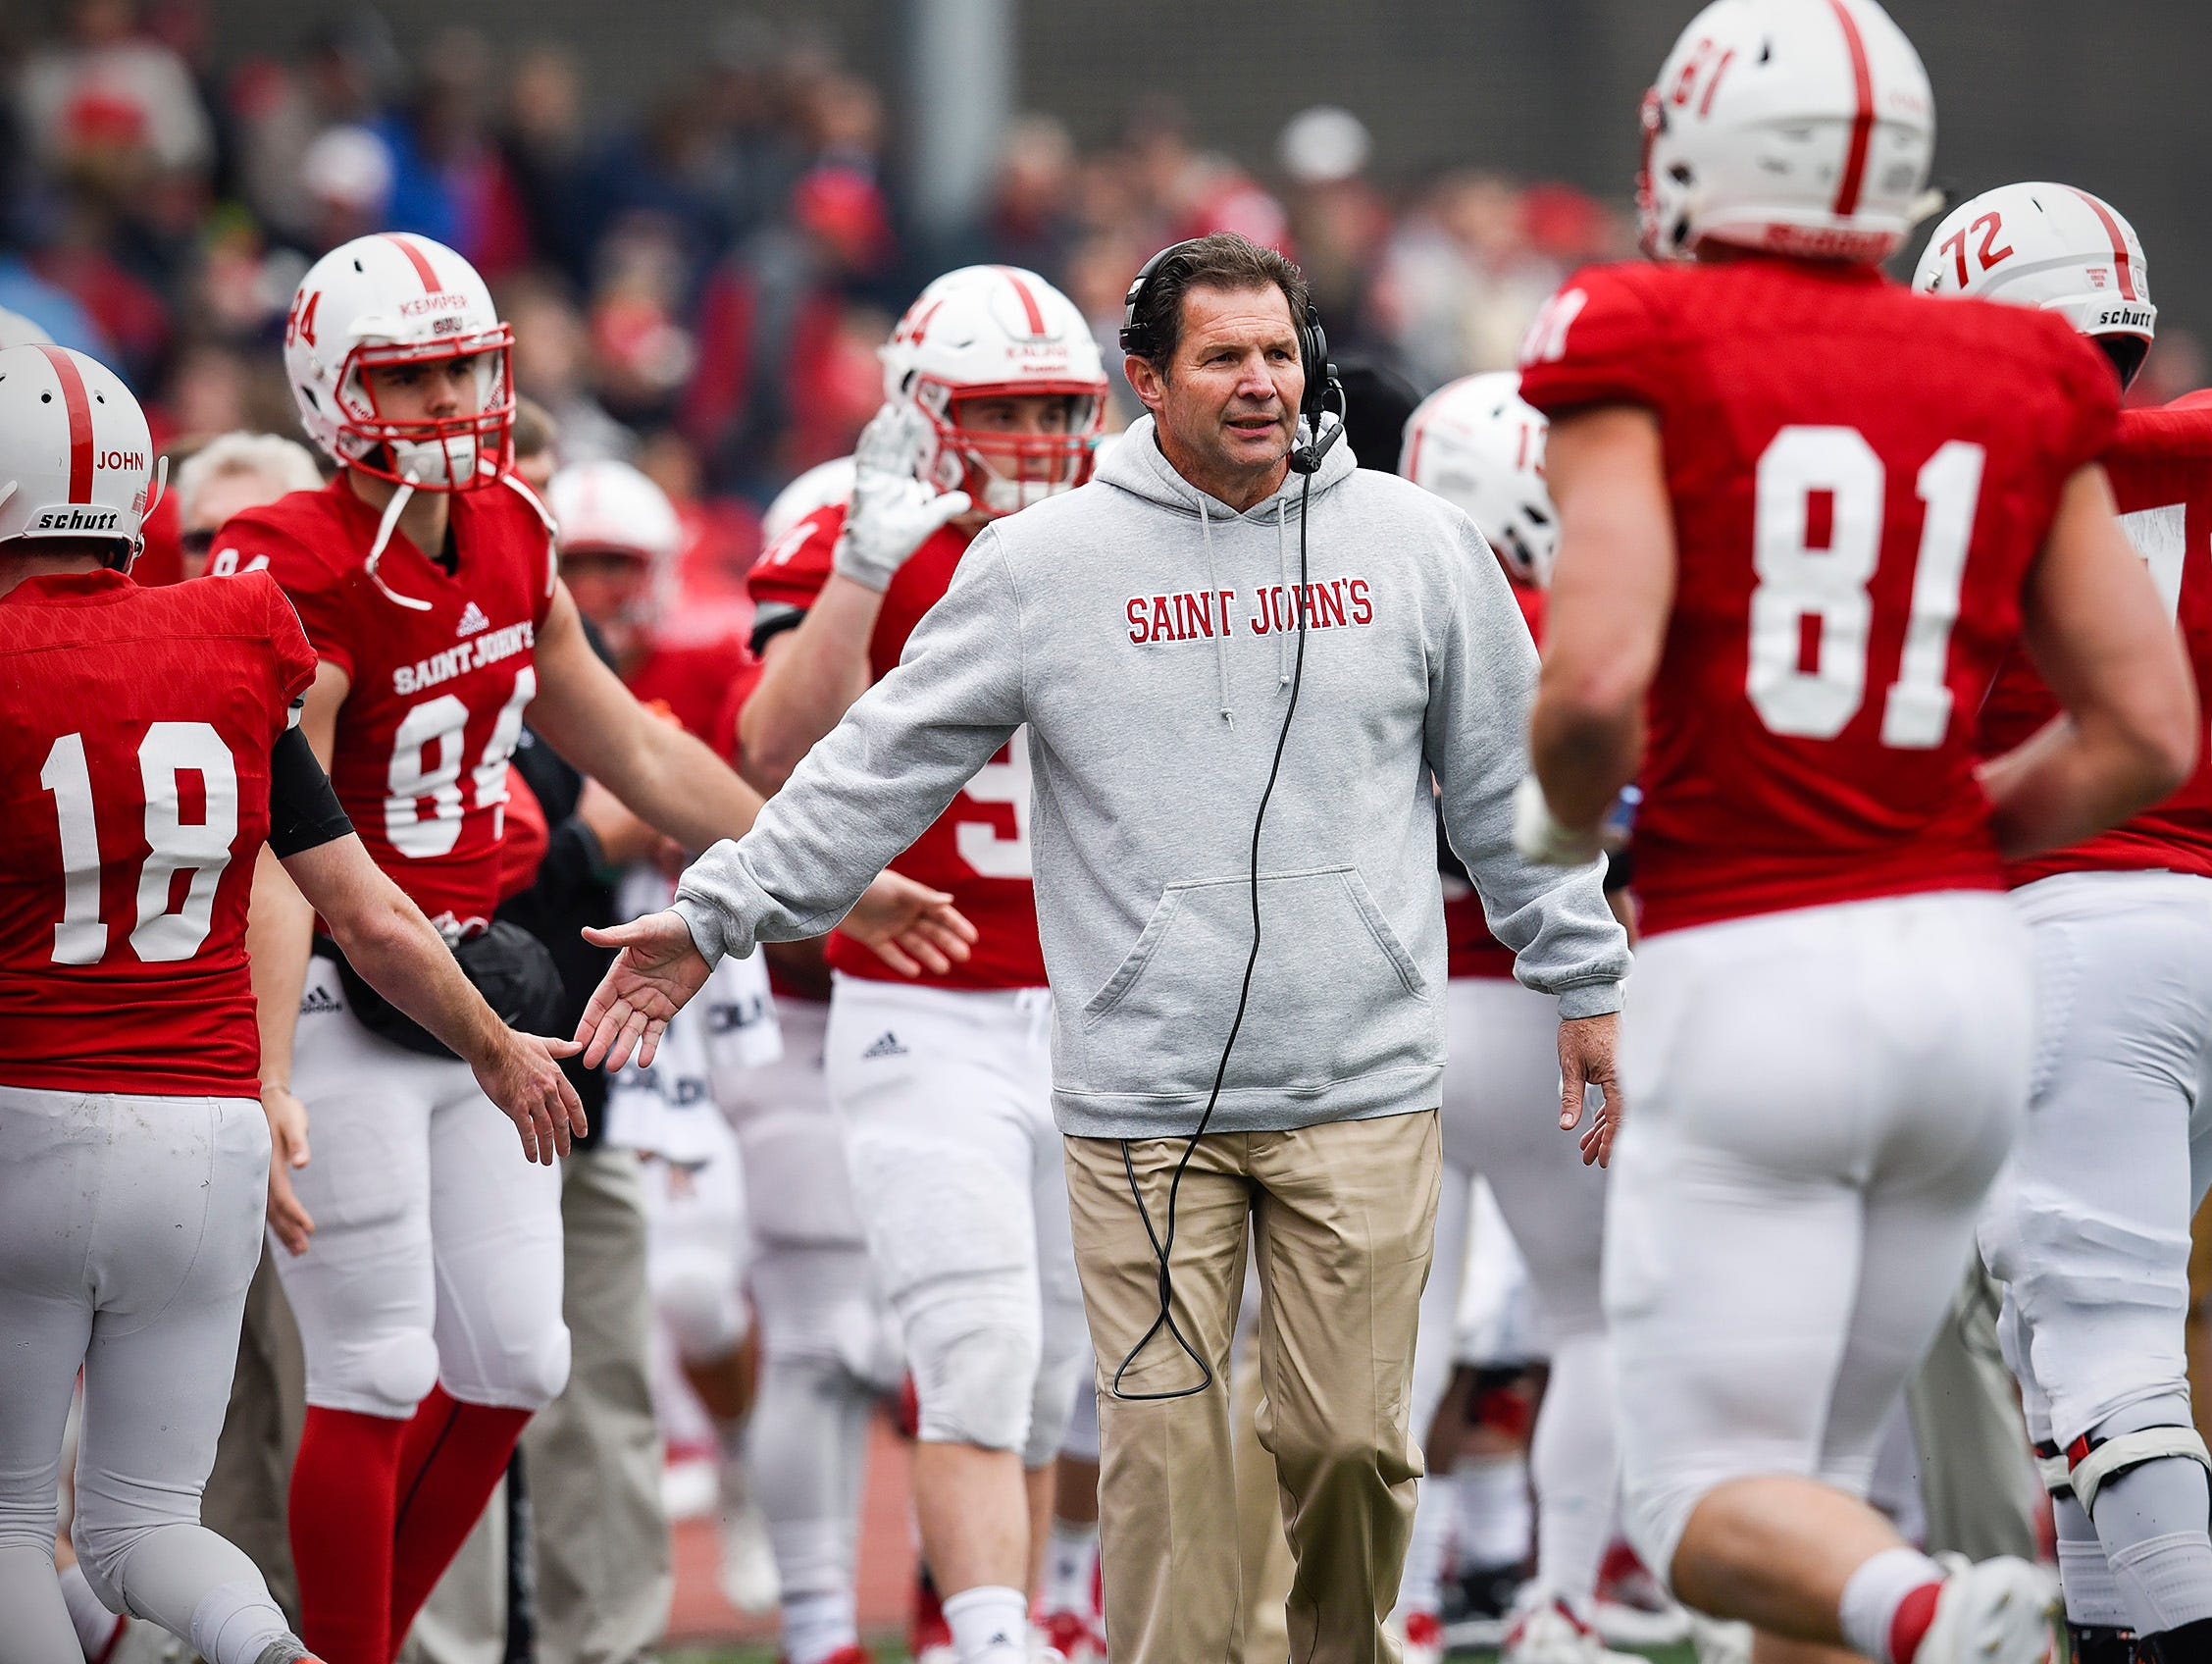 St. John's head coach Gary Fasching celebrates a touchdown with players as they come off the field against St. Thomas during the first half Saturday, Oct. 13, in Collegeville.